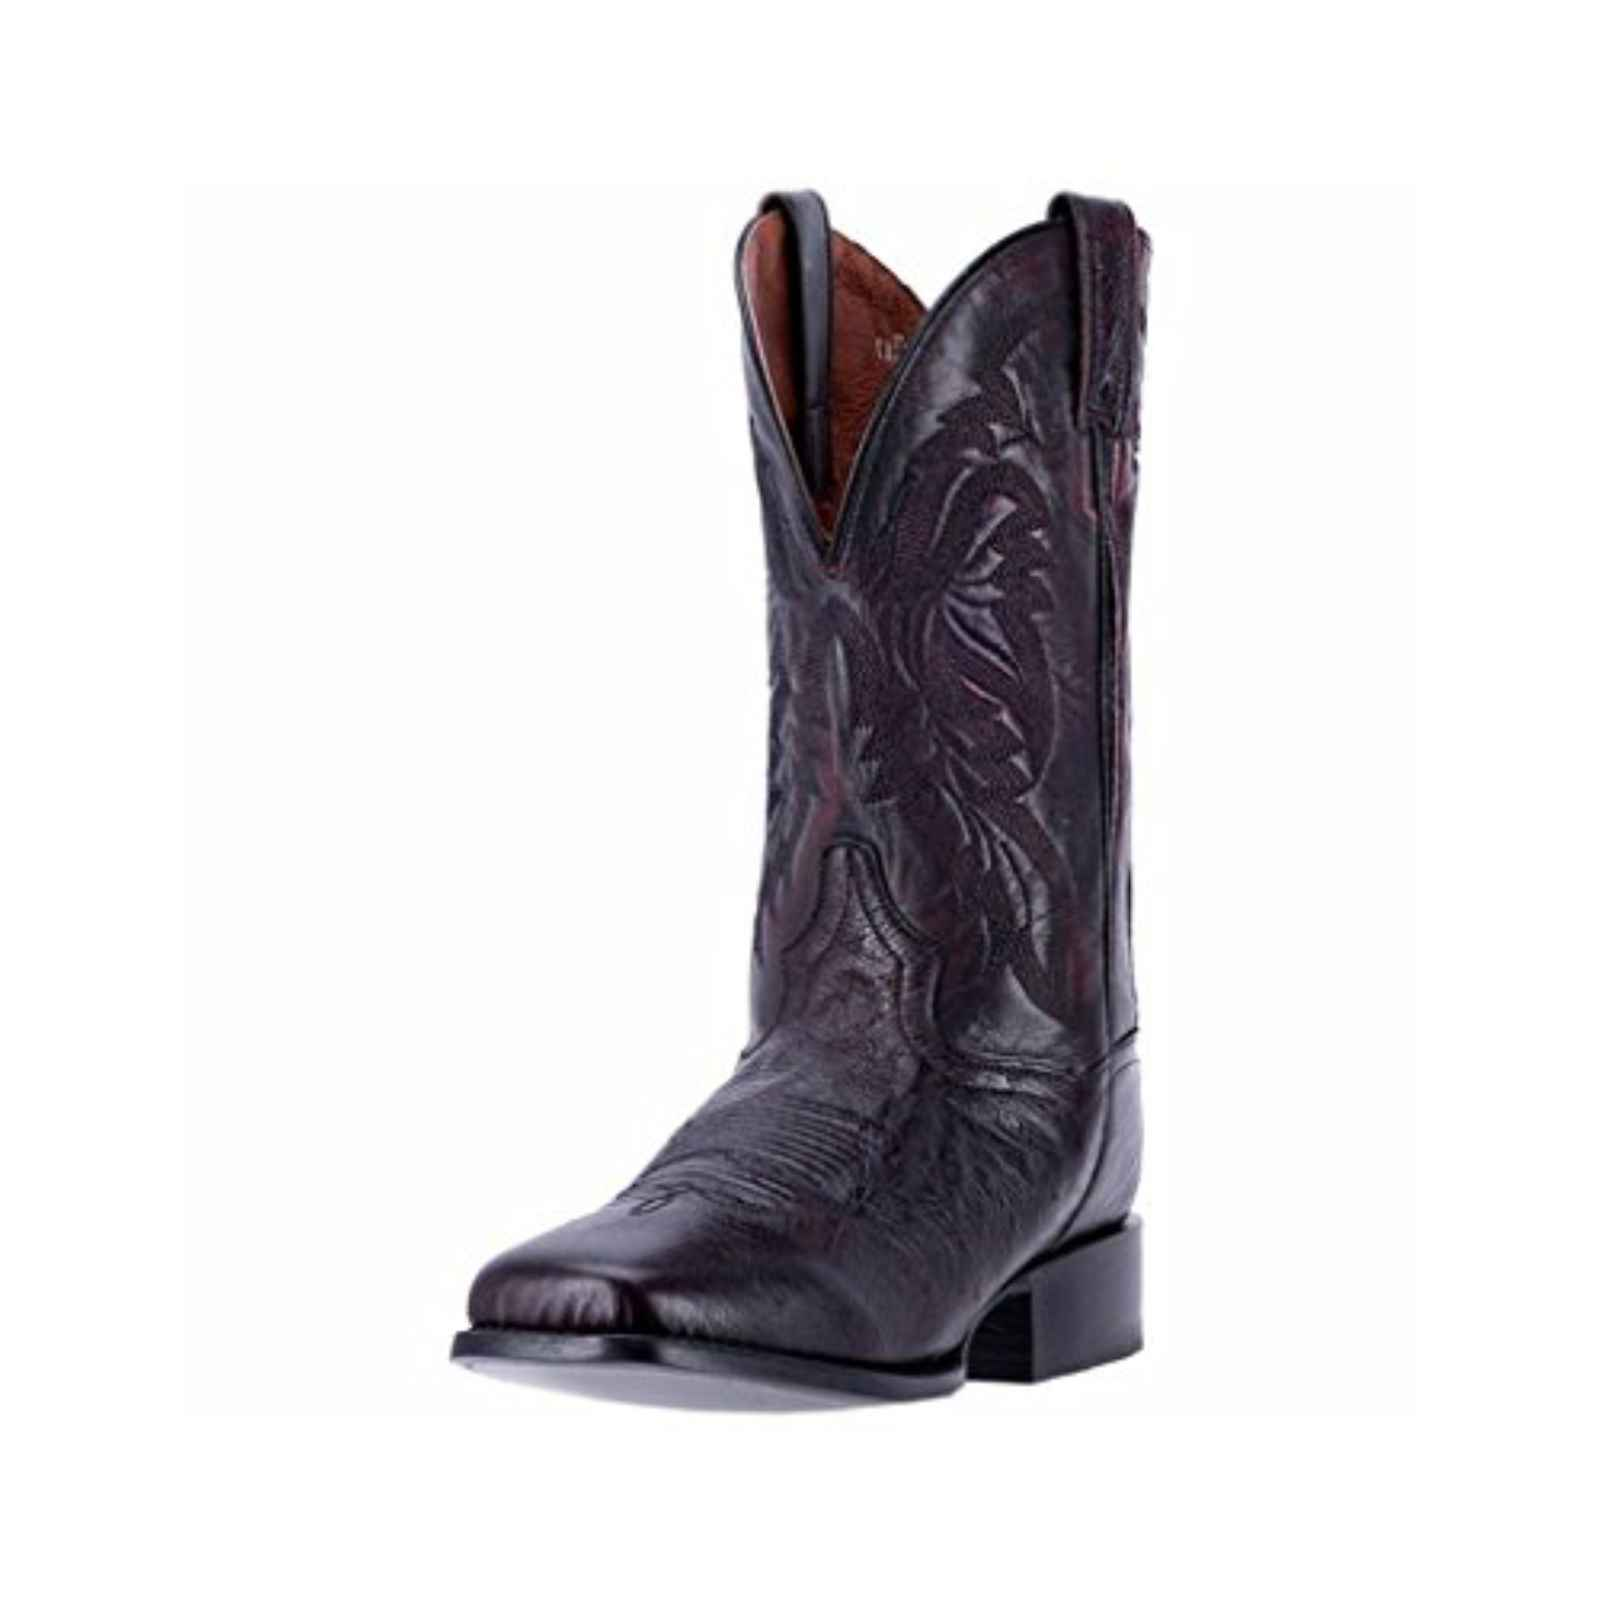 Dan Post Men's Cherry Callahan Broad Square Toe Cowboy Boot, DPP5204 by DAN POST